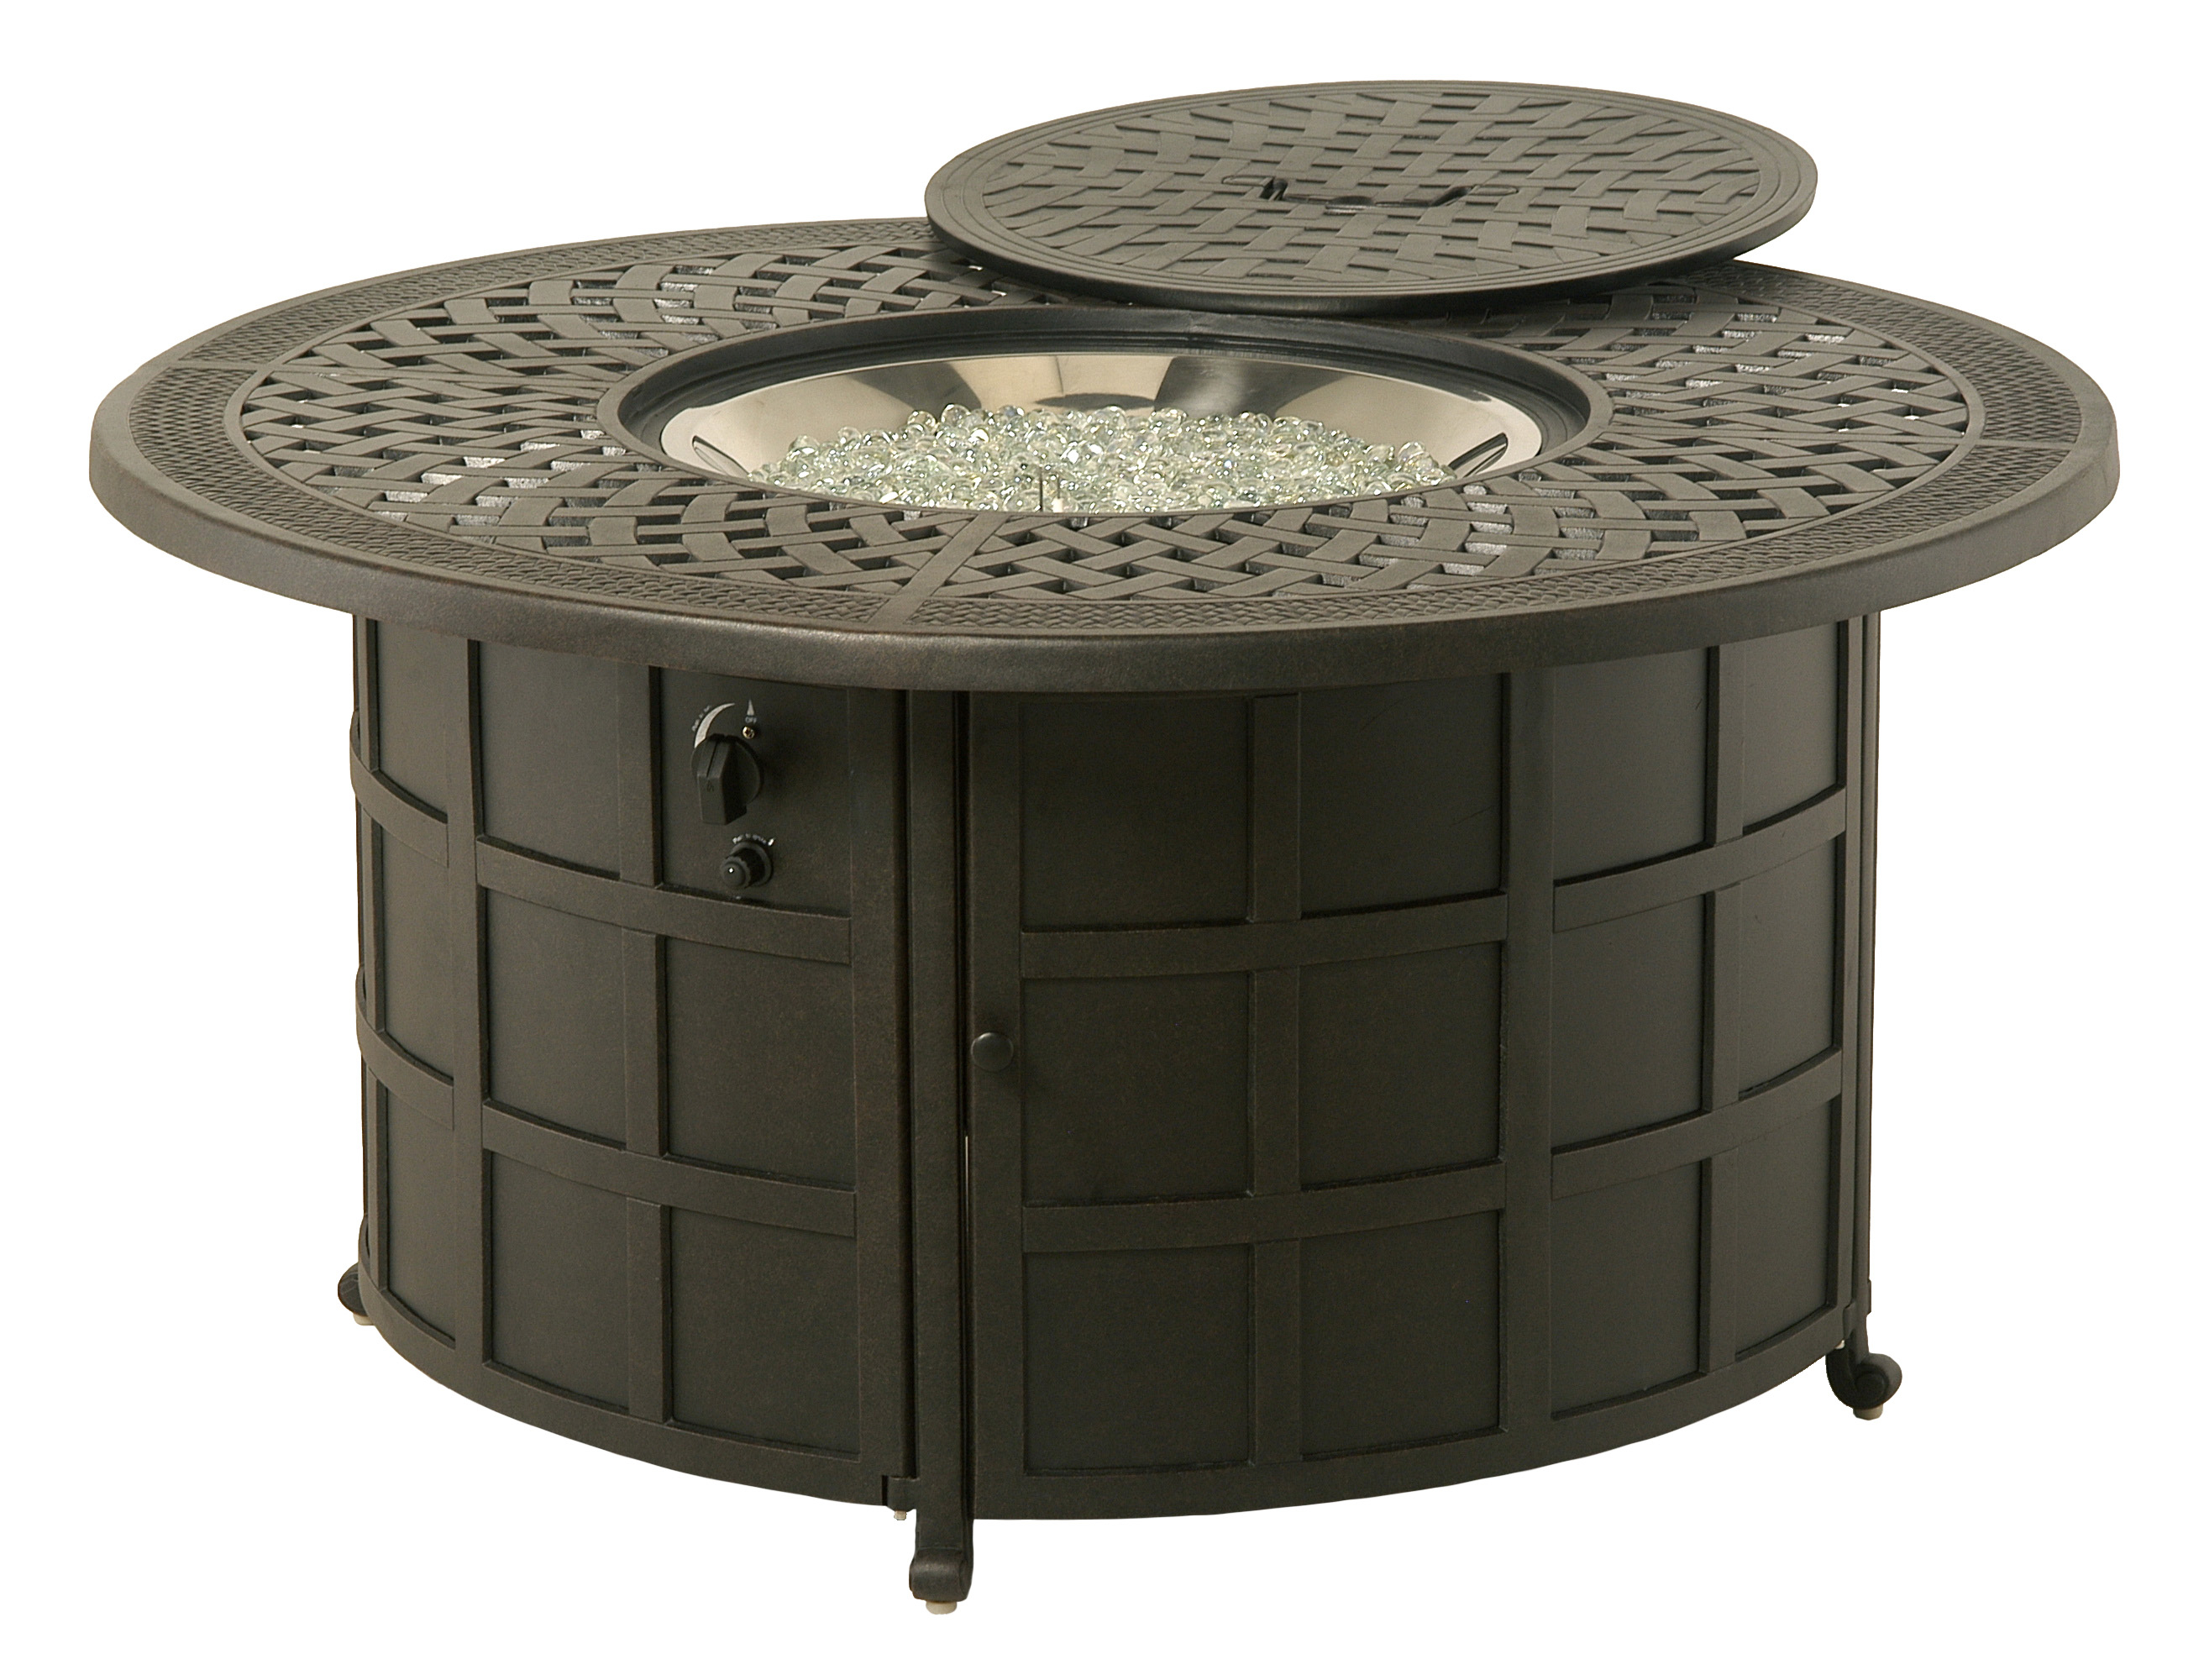 Warm Up Patios With Firepits Waldorf Md Tri County Hearth Patio pertaining to dimensions 2624 X 2000